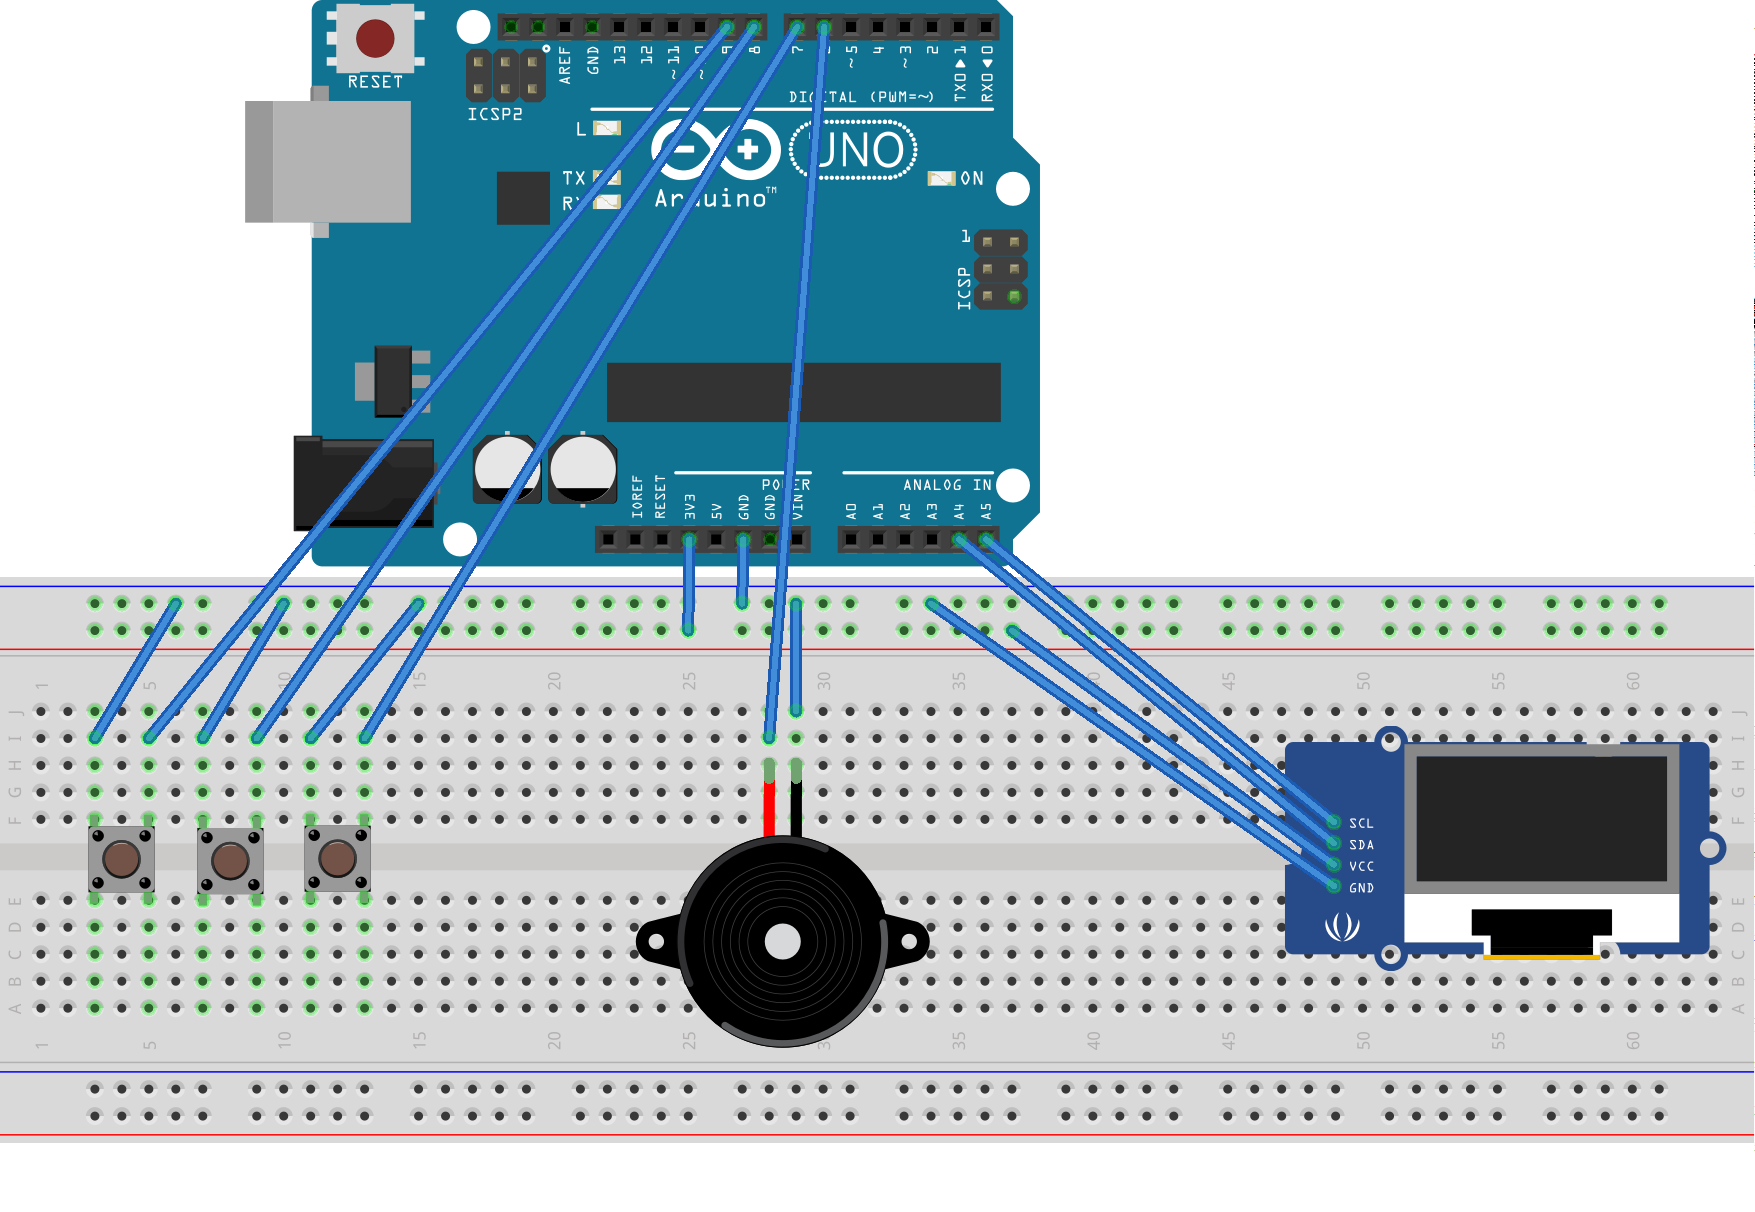 Tamaguino Tamagotchi Clone For Arduino Breadboard Please Use Appropriate Sketch From Sources